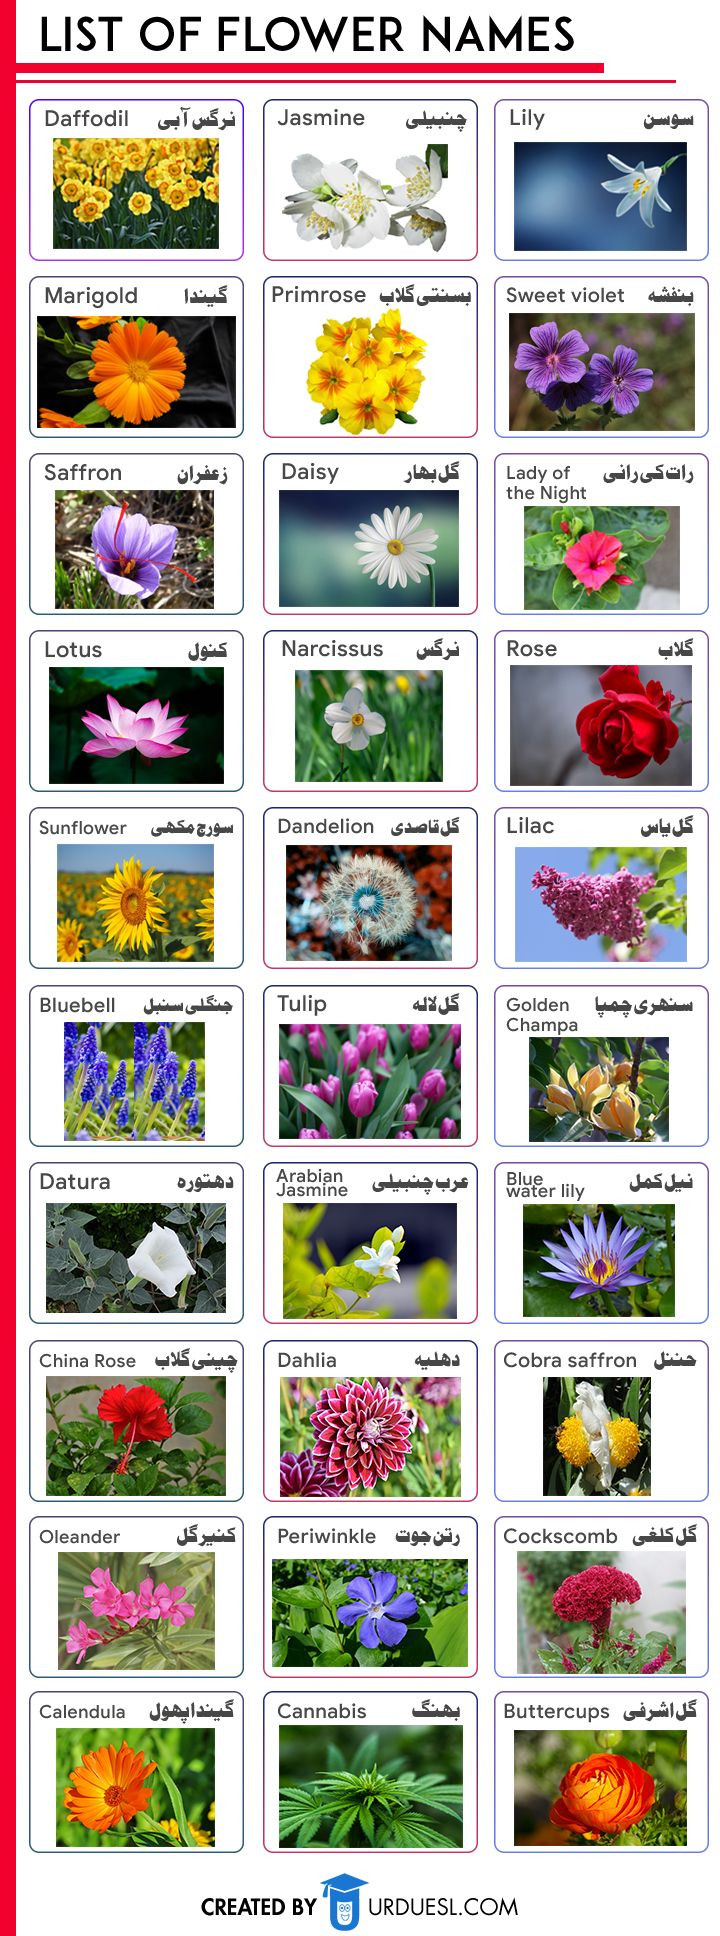 Flower Names In English And Urdu Flowers Name In English Indian Flower Names Flower Names